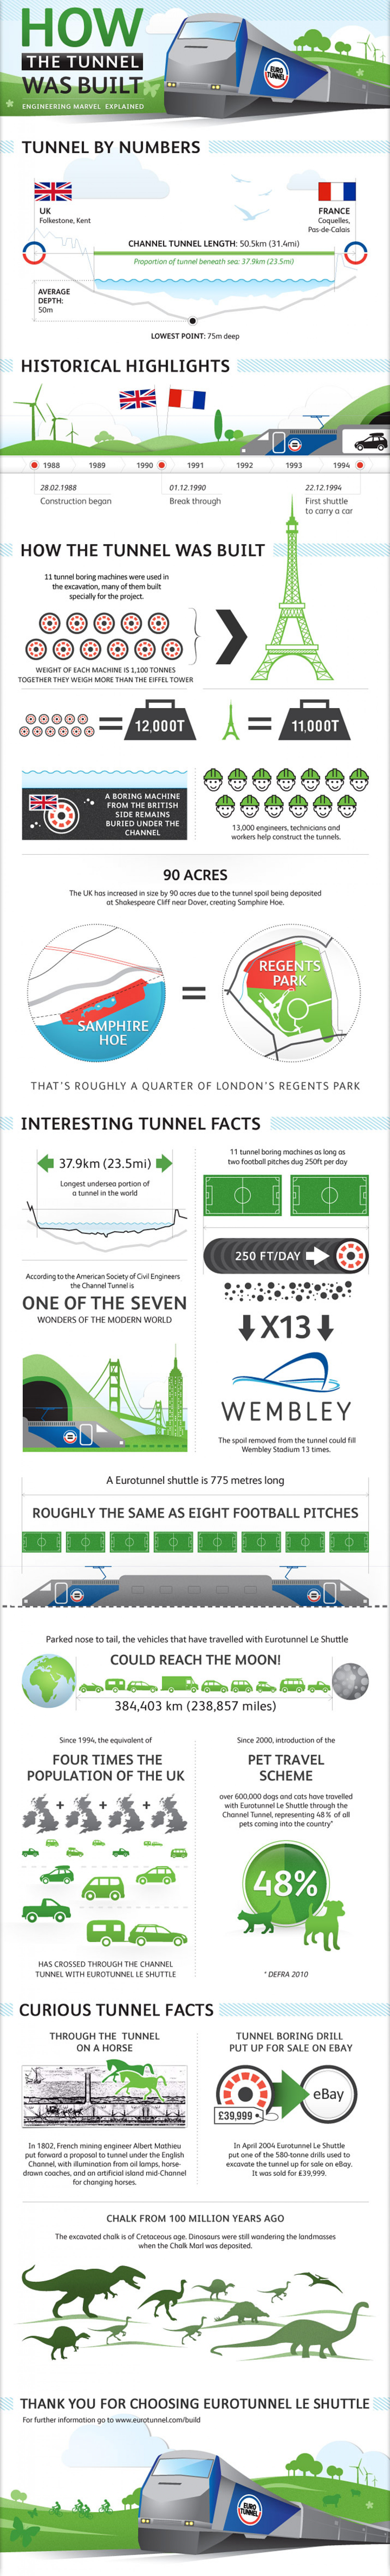 How the Tunnel was Built Infographic